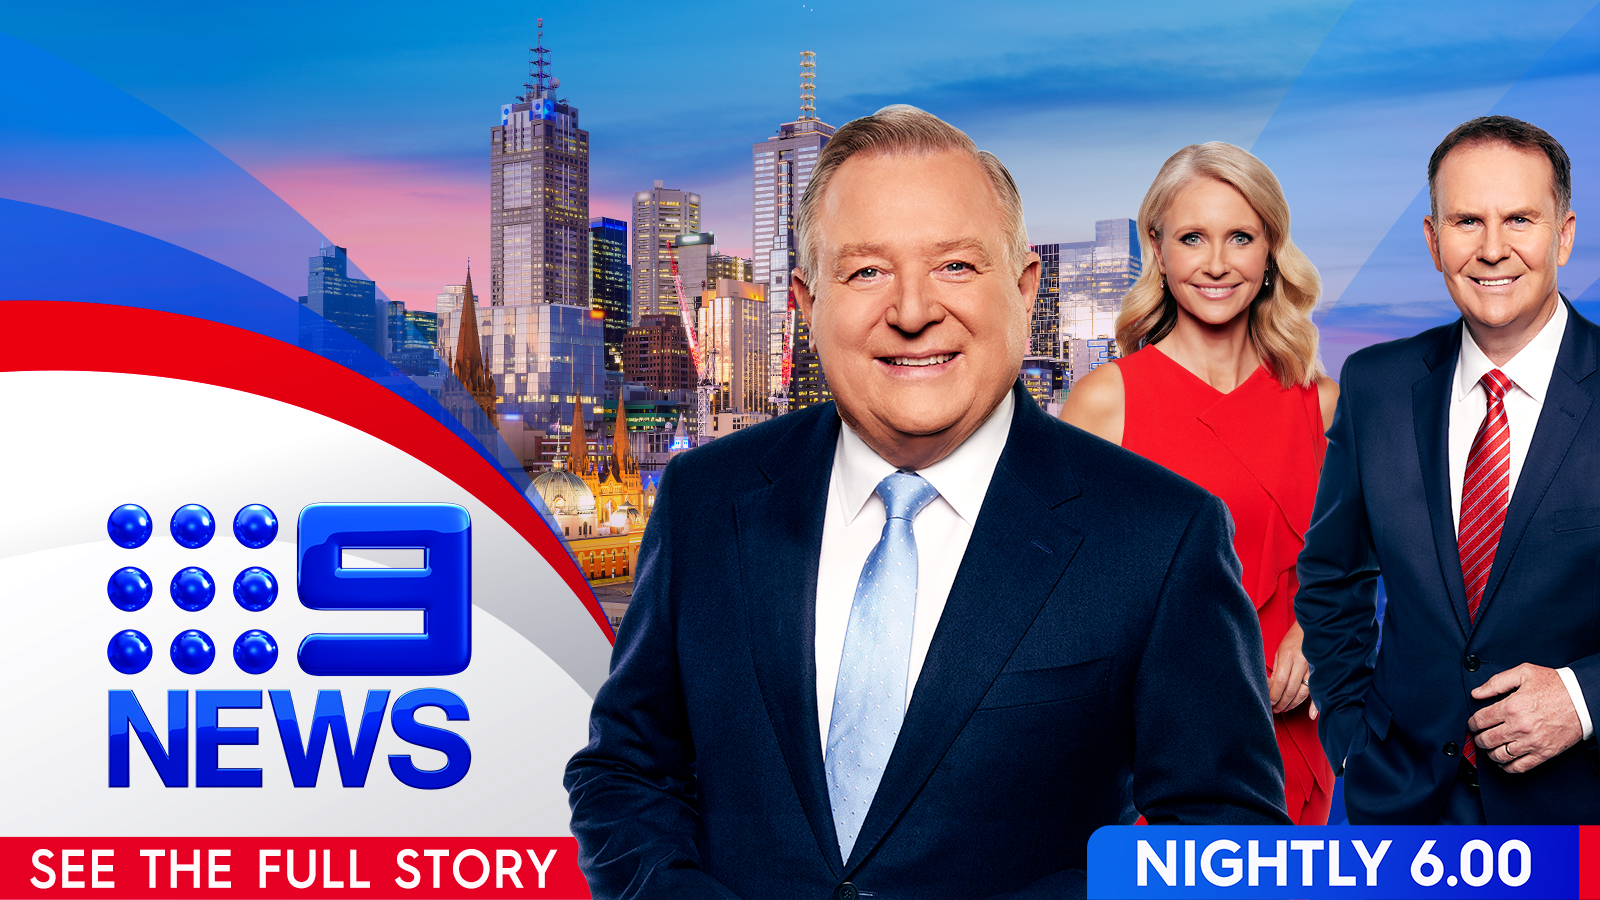 Melbourne 9 news meet the team